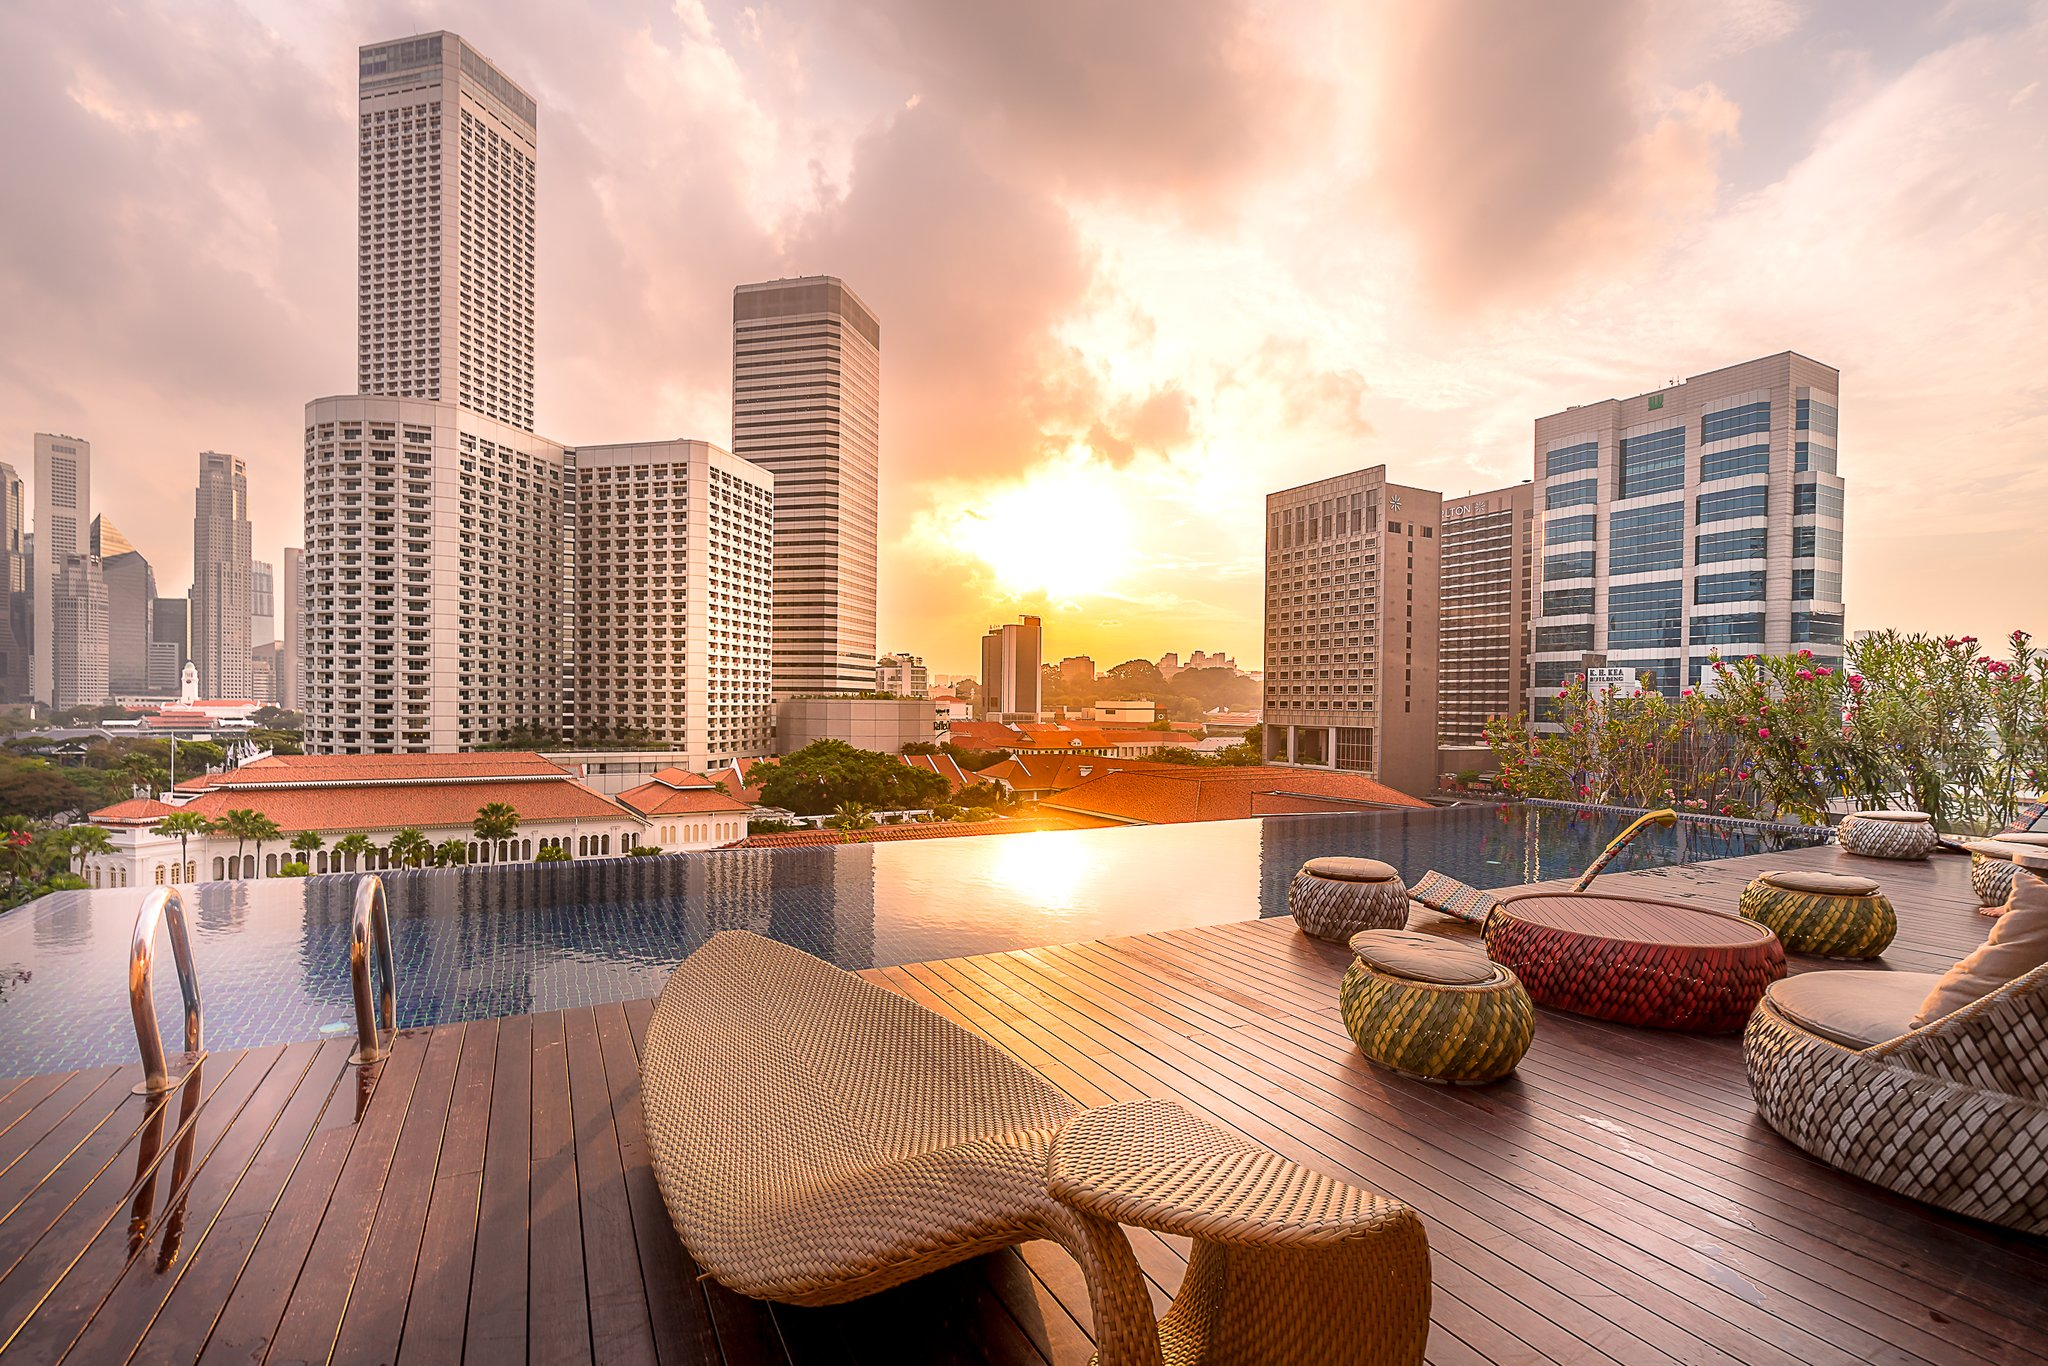 Rooftop_Infinity_Pool_Sunset_View_S.jpg